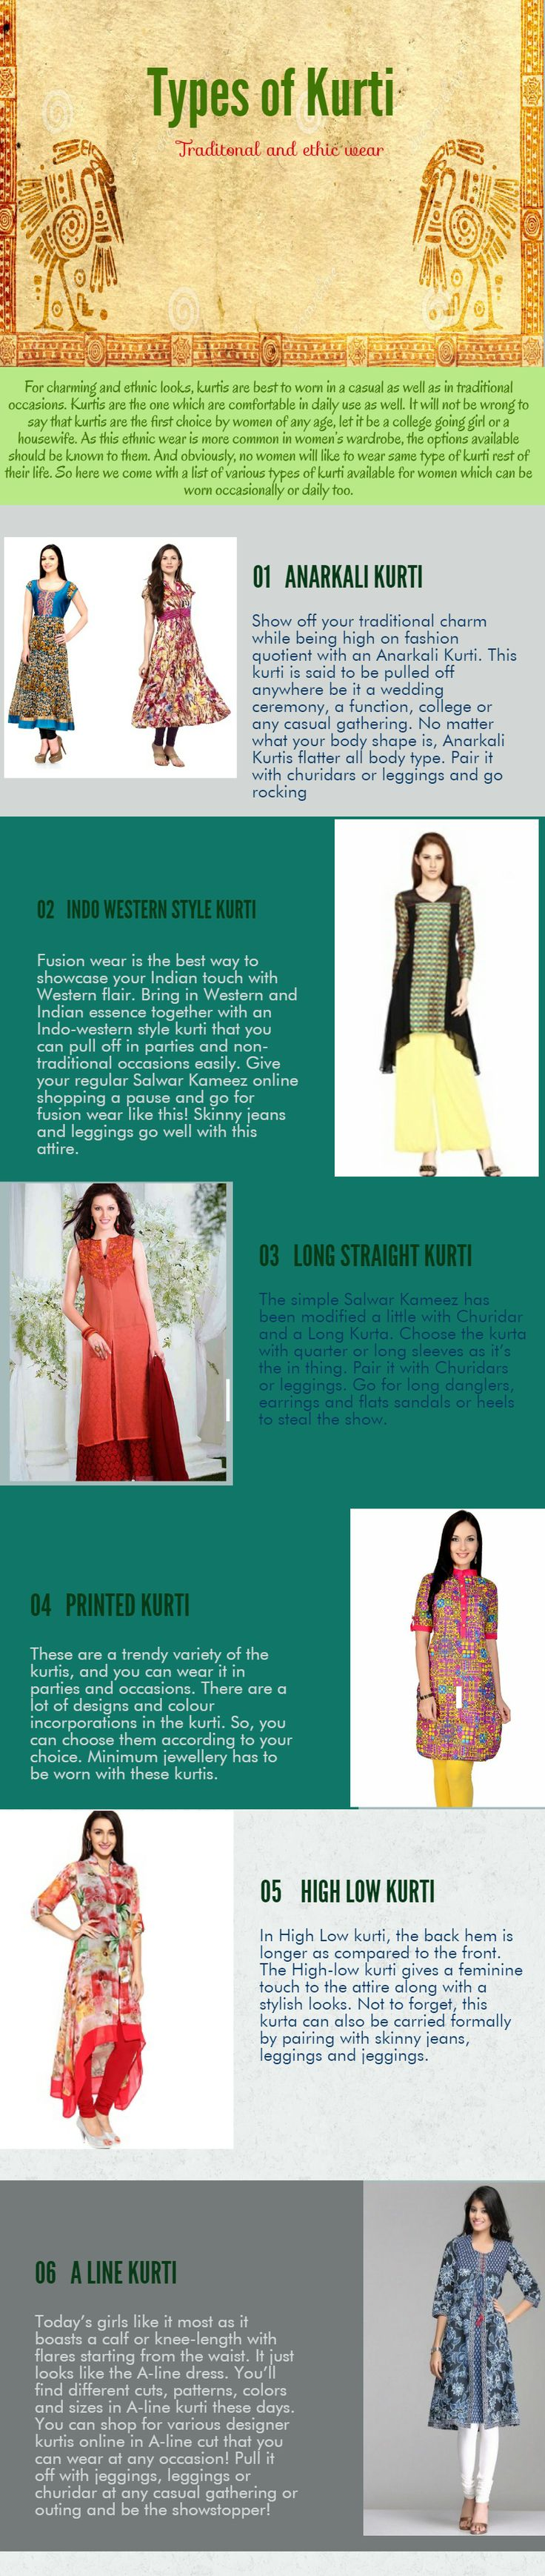 For charming and ethnic looks, kurtis are best to worn in a casual as well as in traditional occasions. Kurtis are the one which are comfortable in daily use as well. If you want to know more please contact us on:- http://www.modellingagenciesmumbai.com